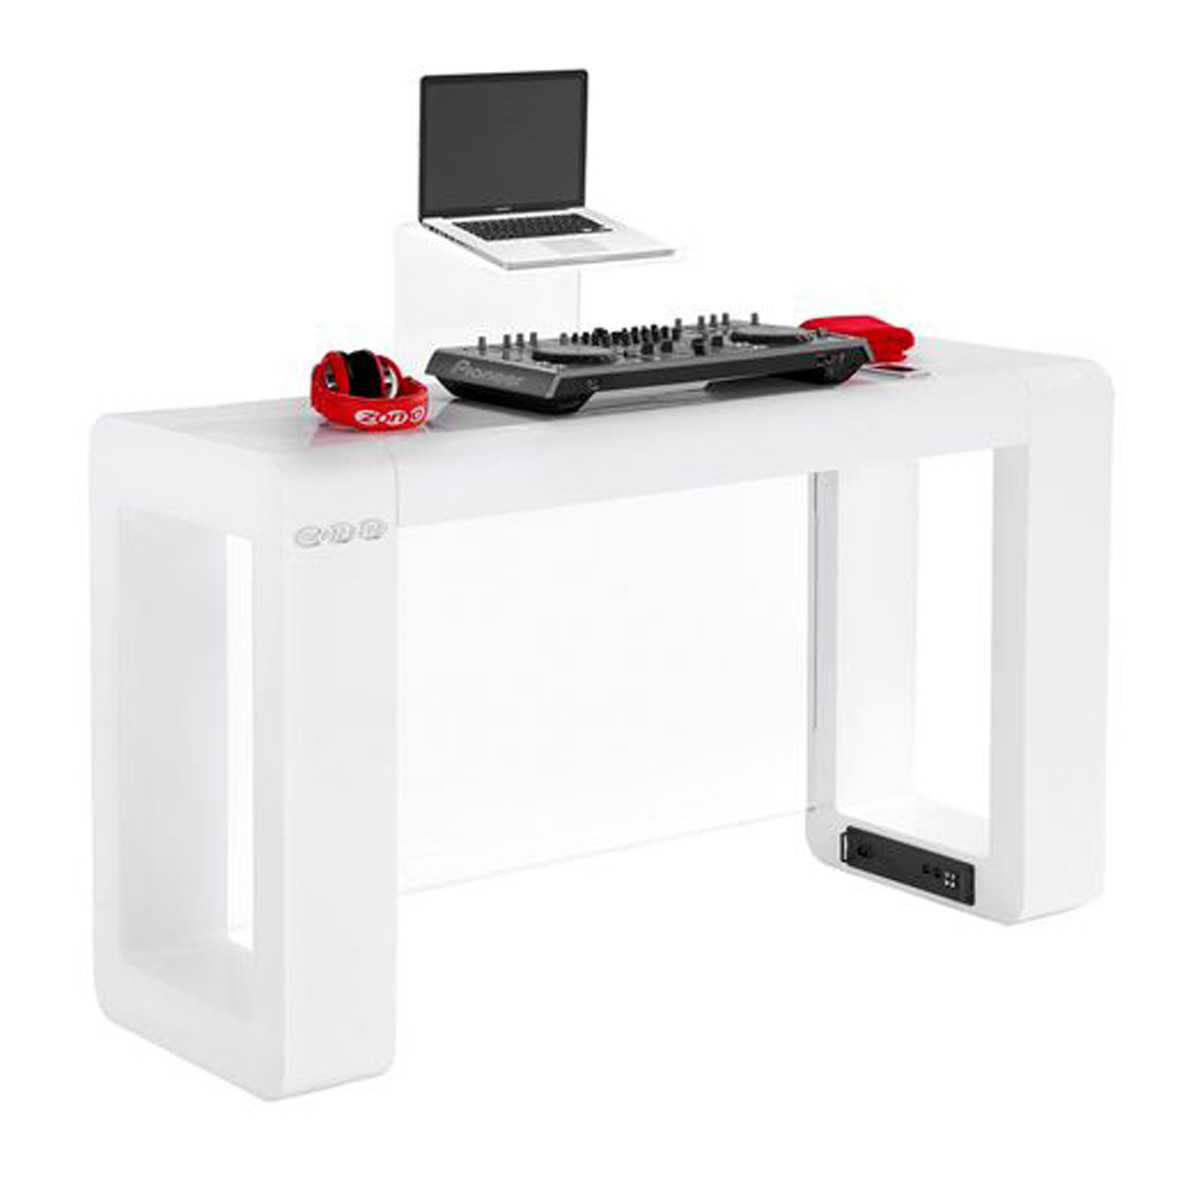 Furniture For Less Miami: Zomo Deck Stand Miami MK2, White At Gear4music.com